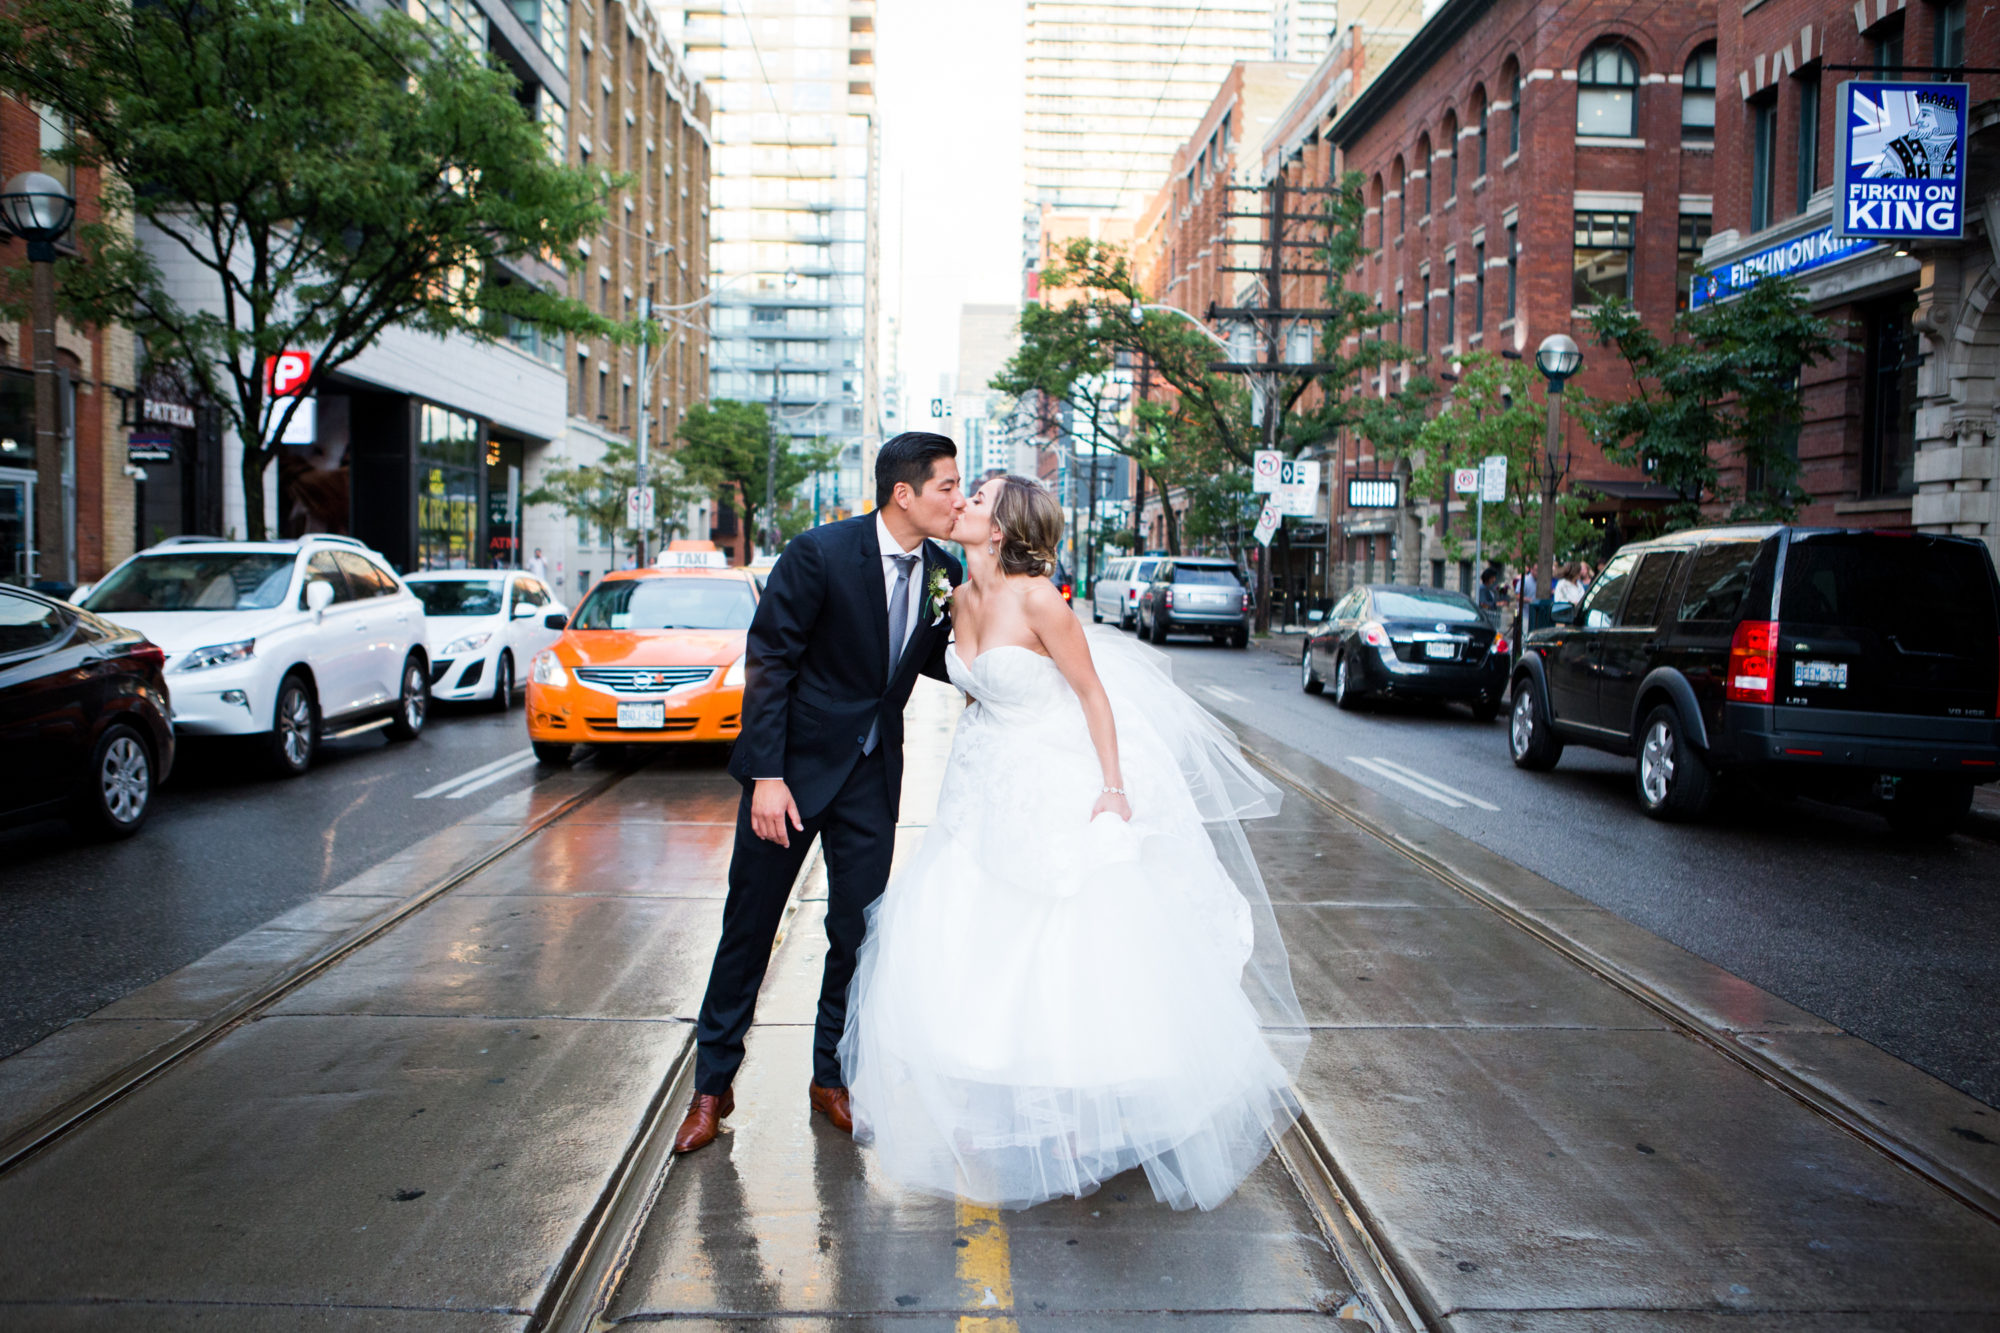 Kiss Bride Groom King Street Zsuzsi Pal Photography Toronto Wedding 2nd Second Floor Events